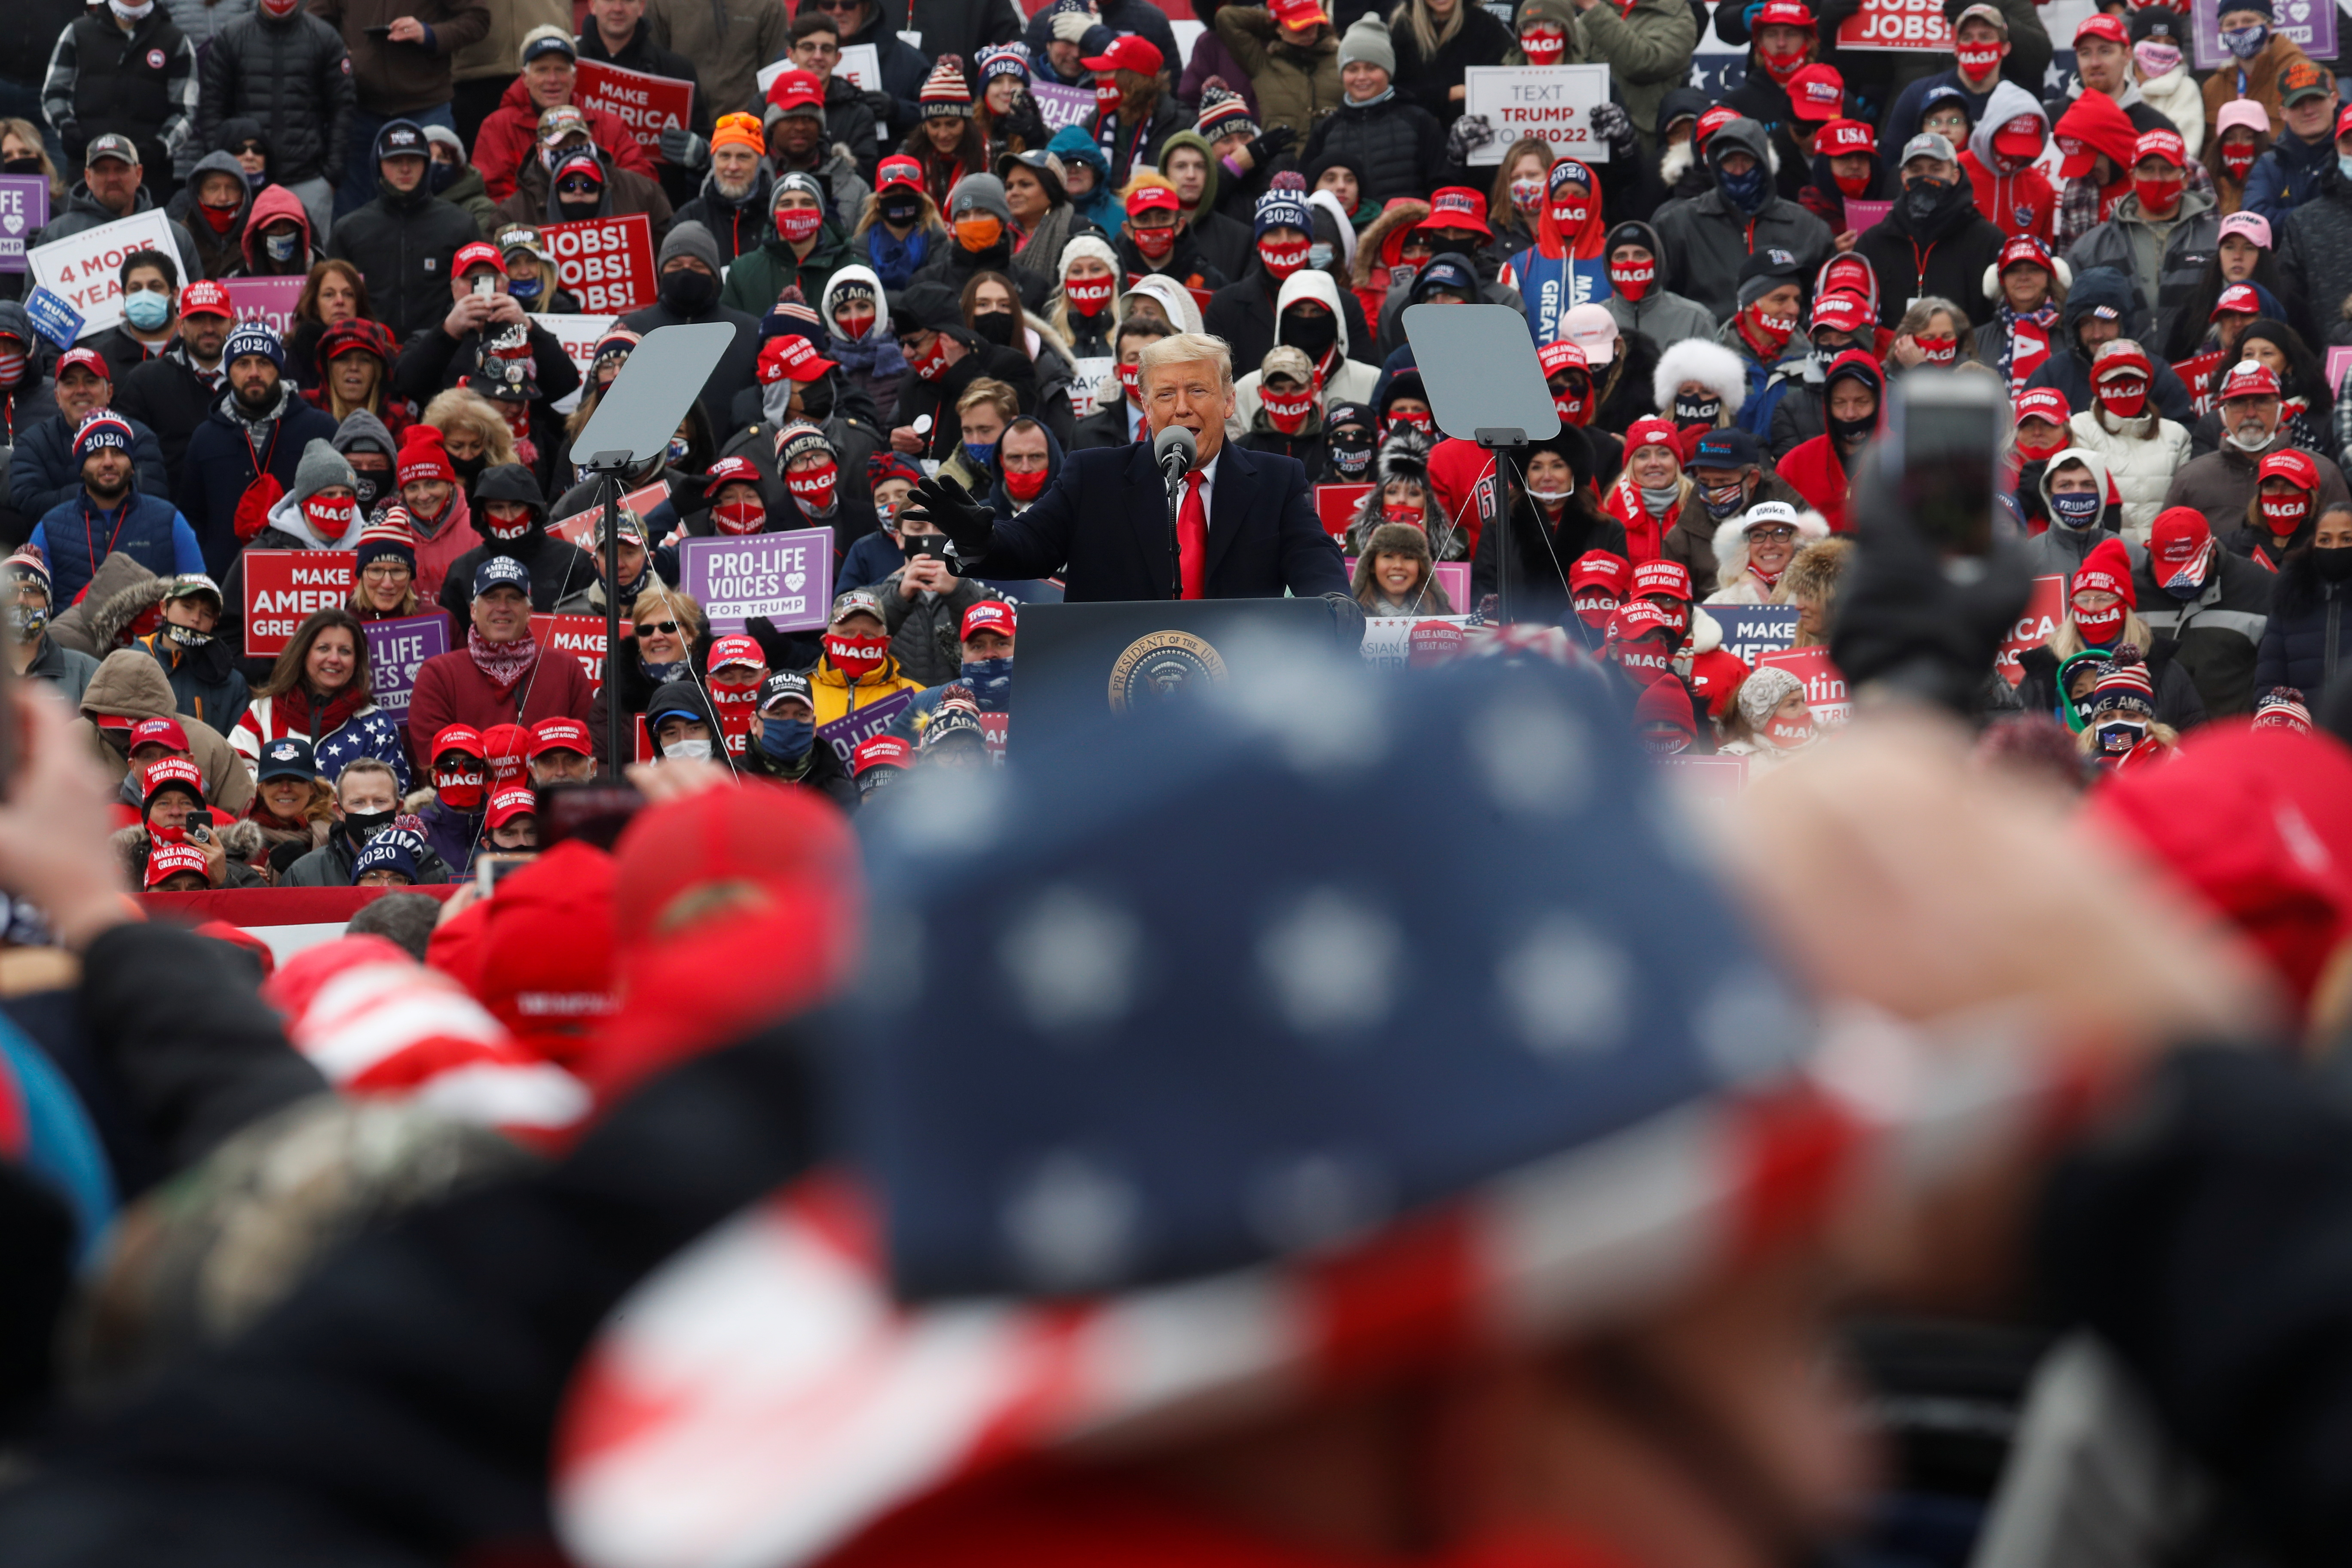 U.S. President Donald Trump's campaign rally in Waterford Township, Michigan